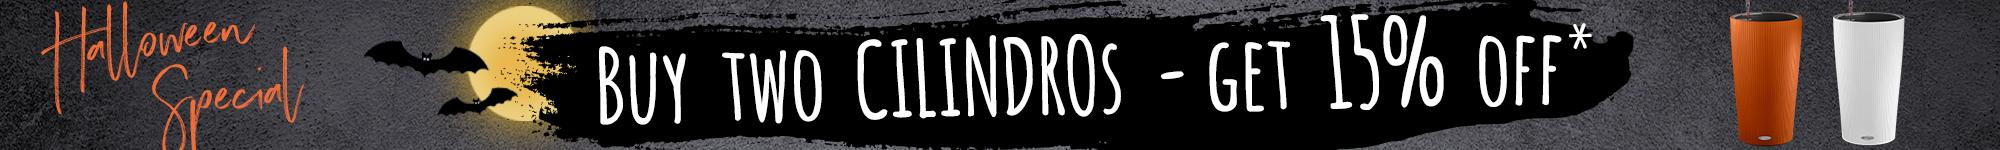 le_listing_banner_promo_cilindro_halloween_2019_us